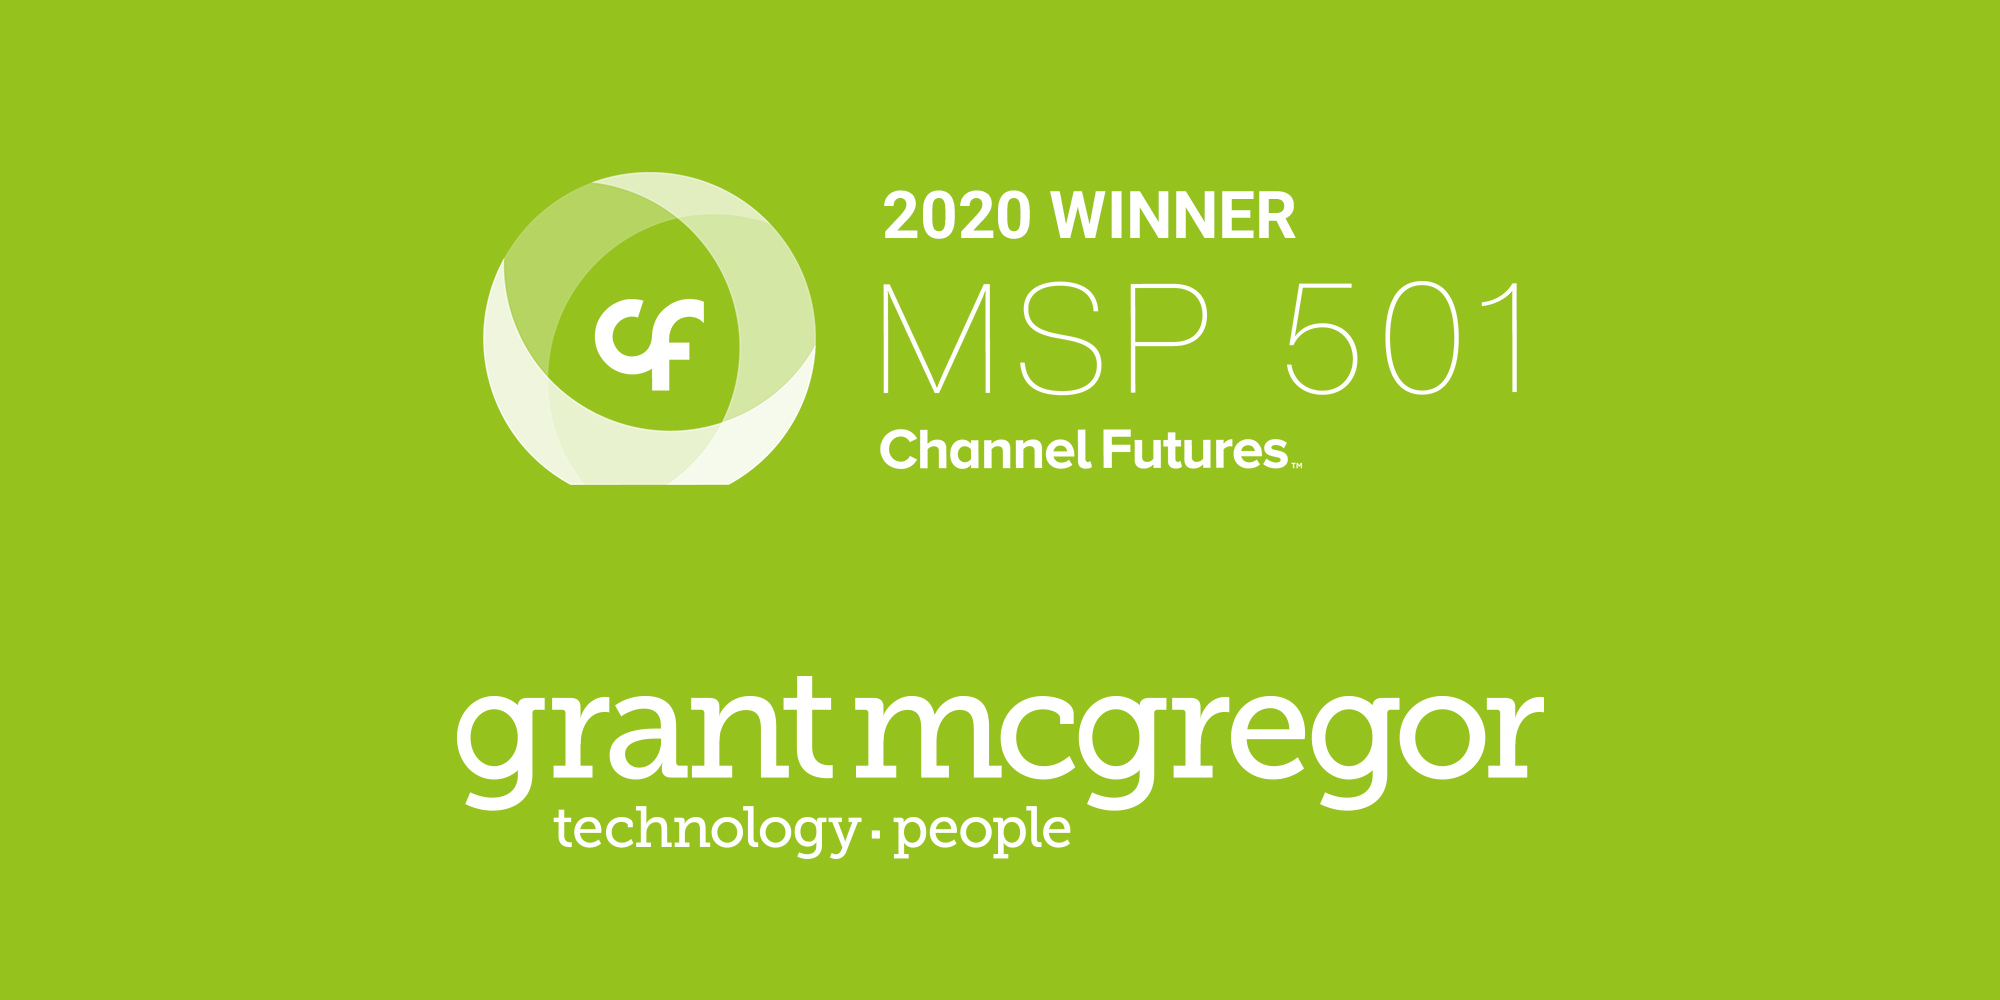 Grant McGregor ranks in the top 200 IT Managed Service Providers (MSPs) on the planet, one of the highest-placed in the UK and top-rated in Scotland.